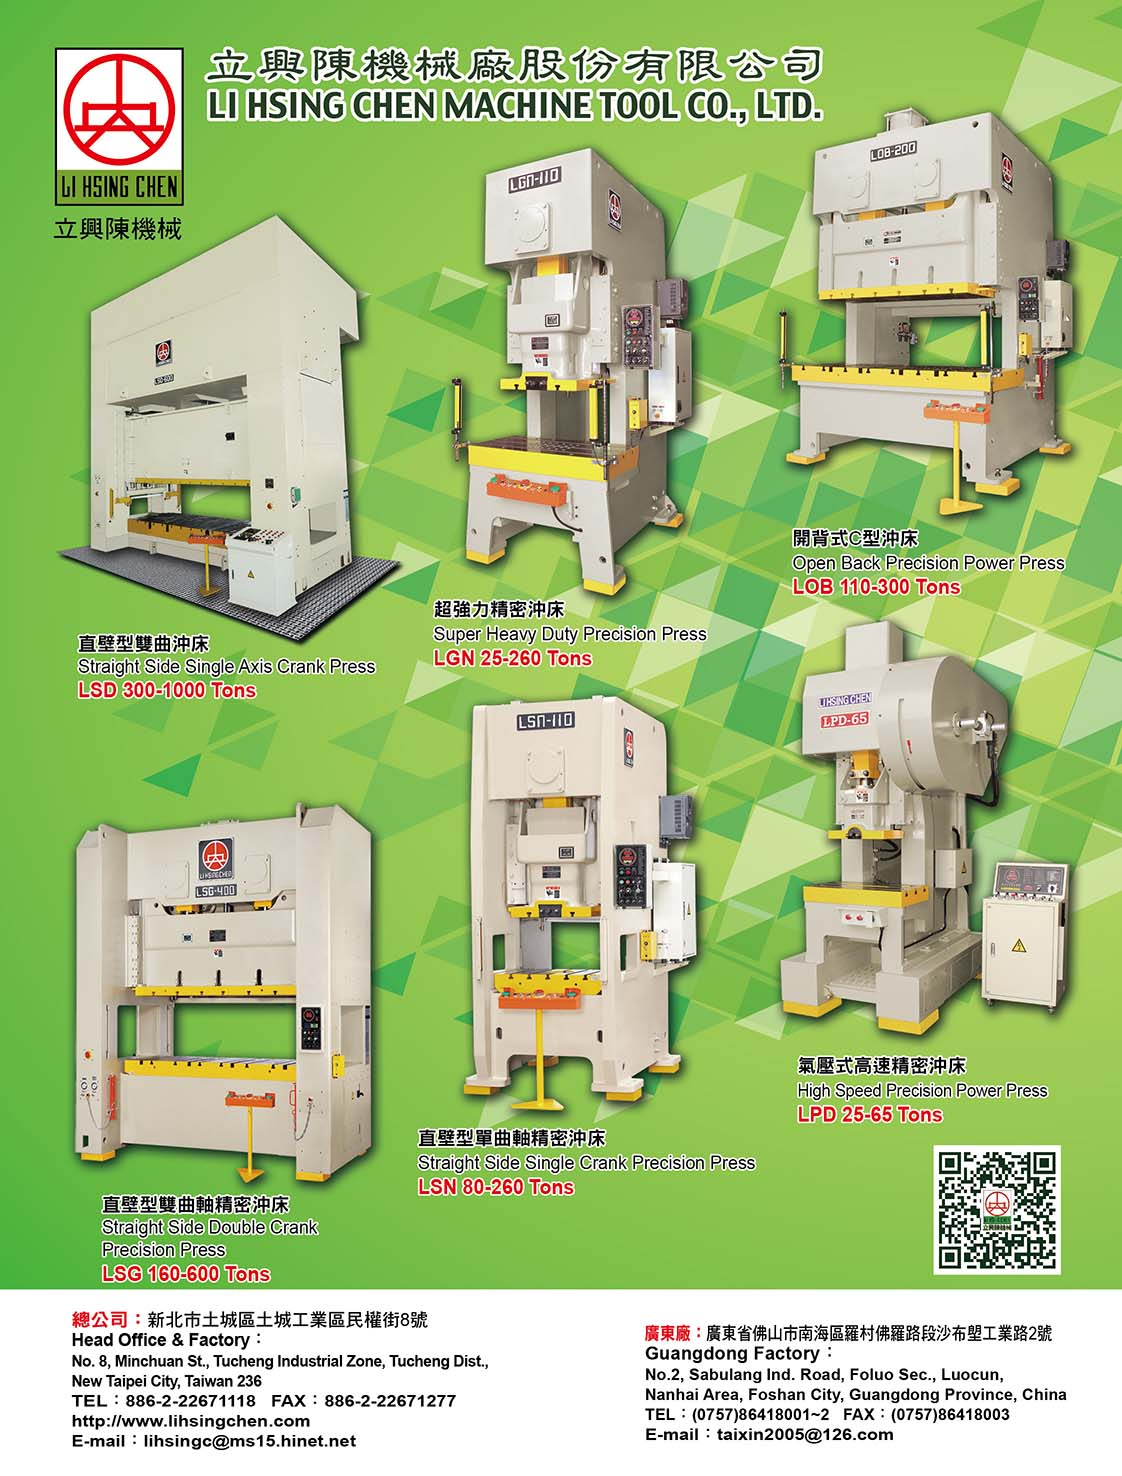 LI HSING CHEN MACHINE TOOL CO., LTD.